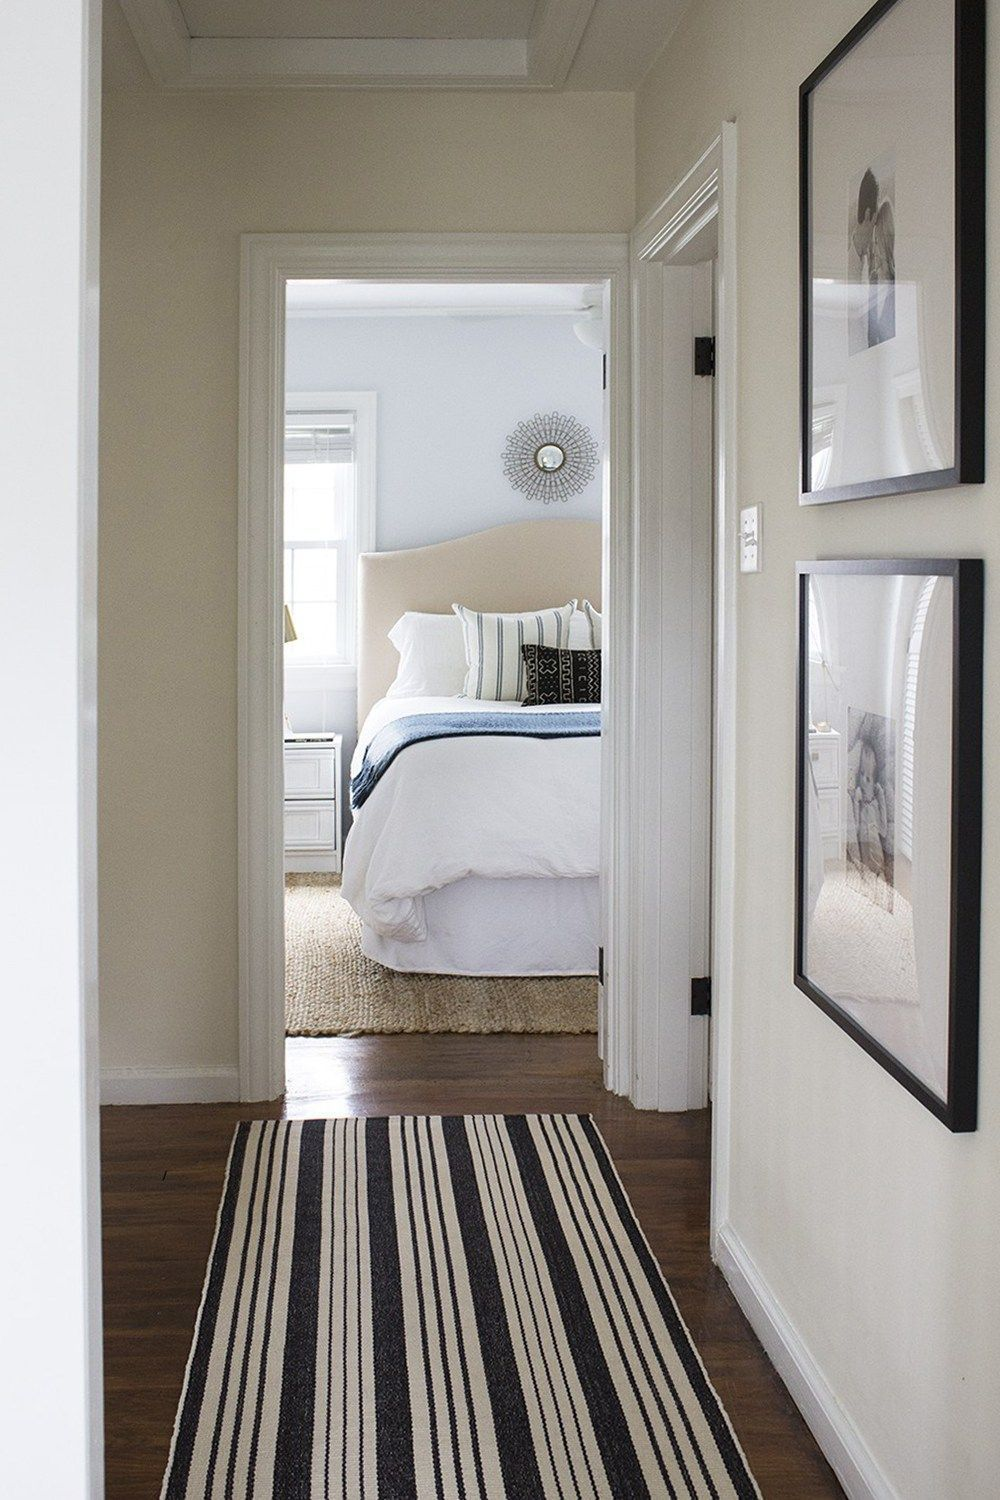 Fresh Up Your Hallway With Our Lighting Tips Check Here Some Ideas Www Lightingstores Eu Visit Our Blog Hallway Designs Hallway Decorating Modern Hallway